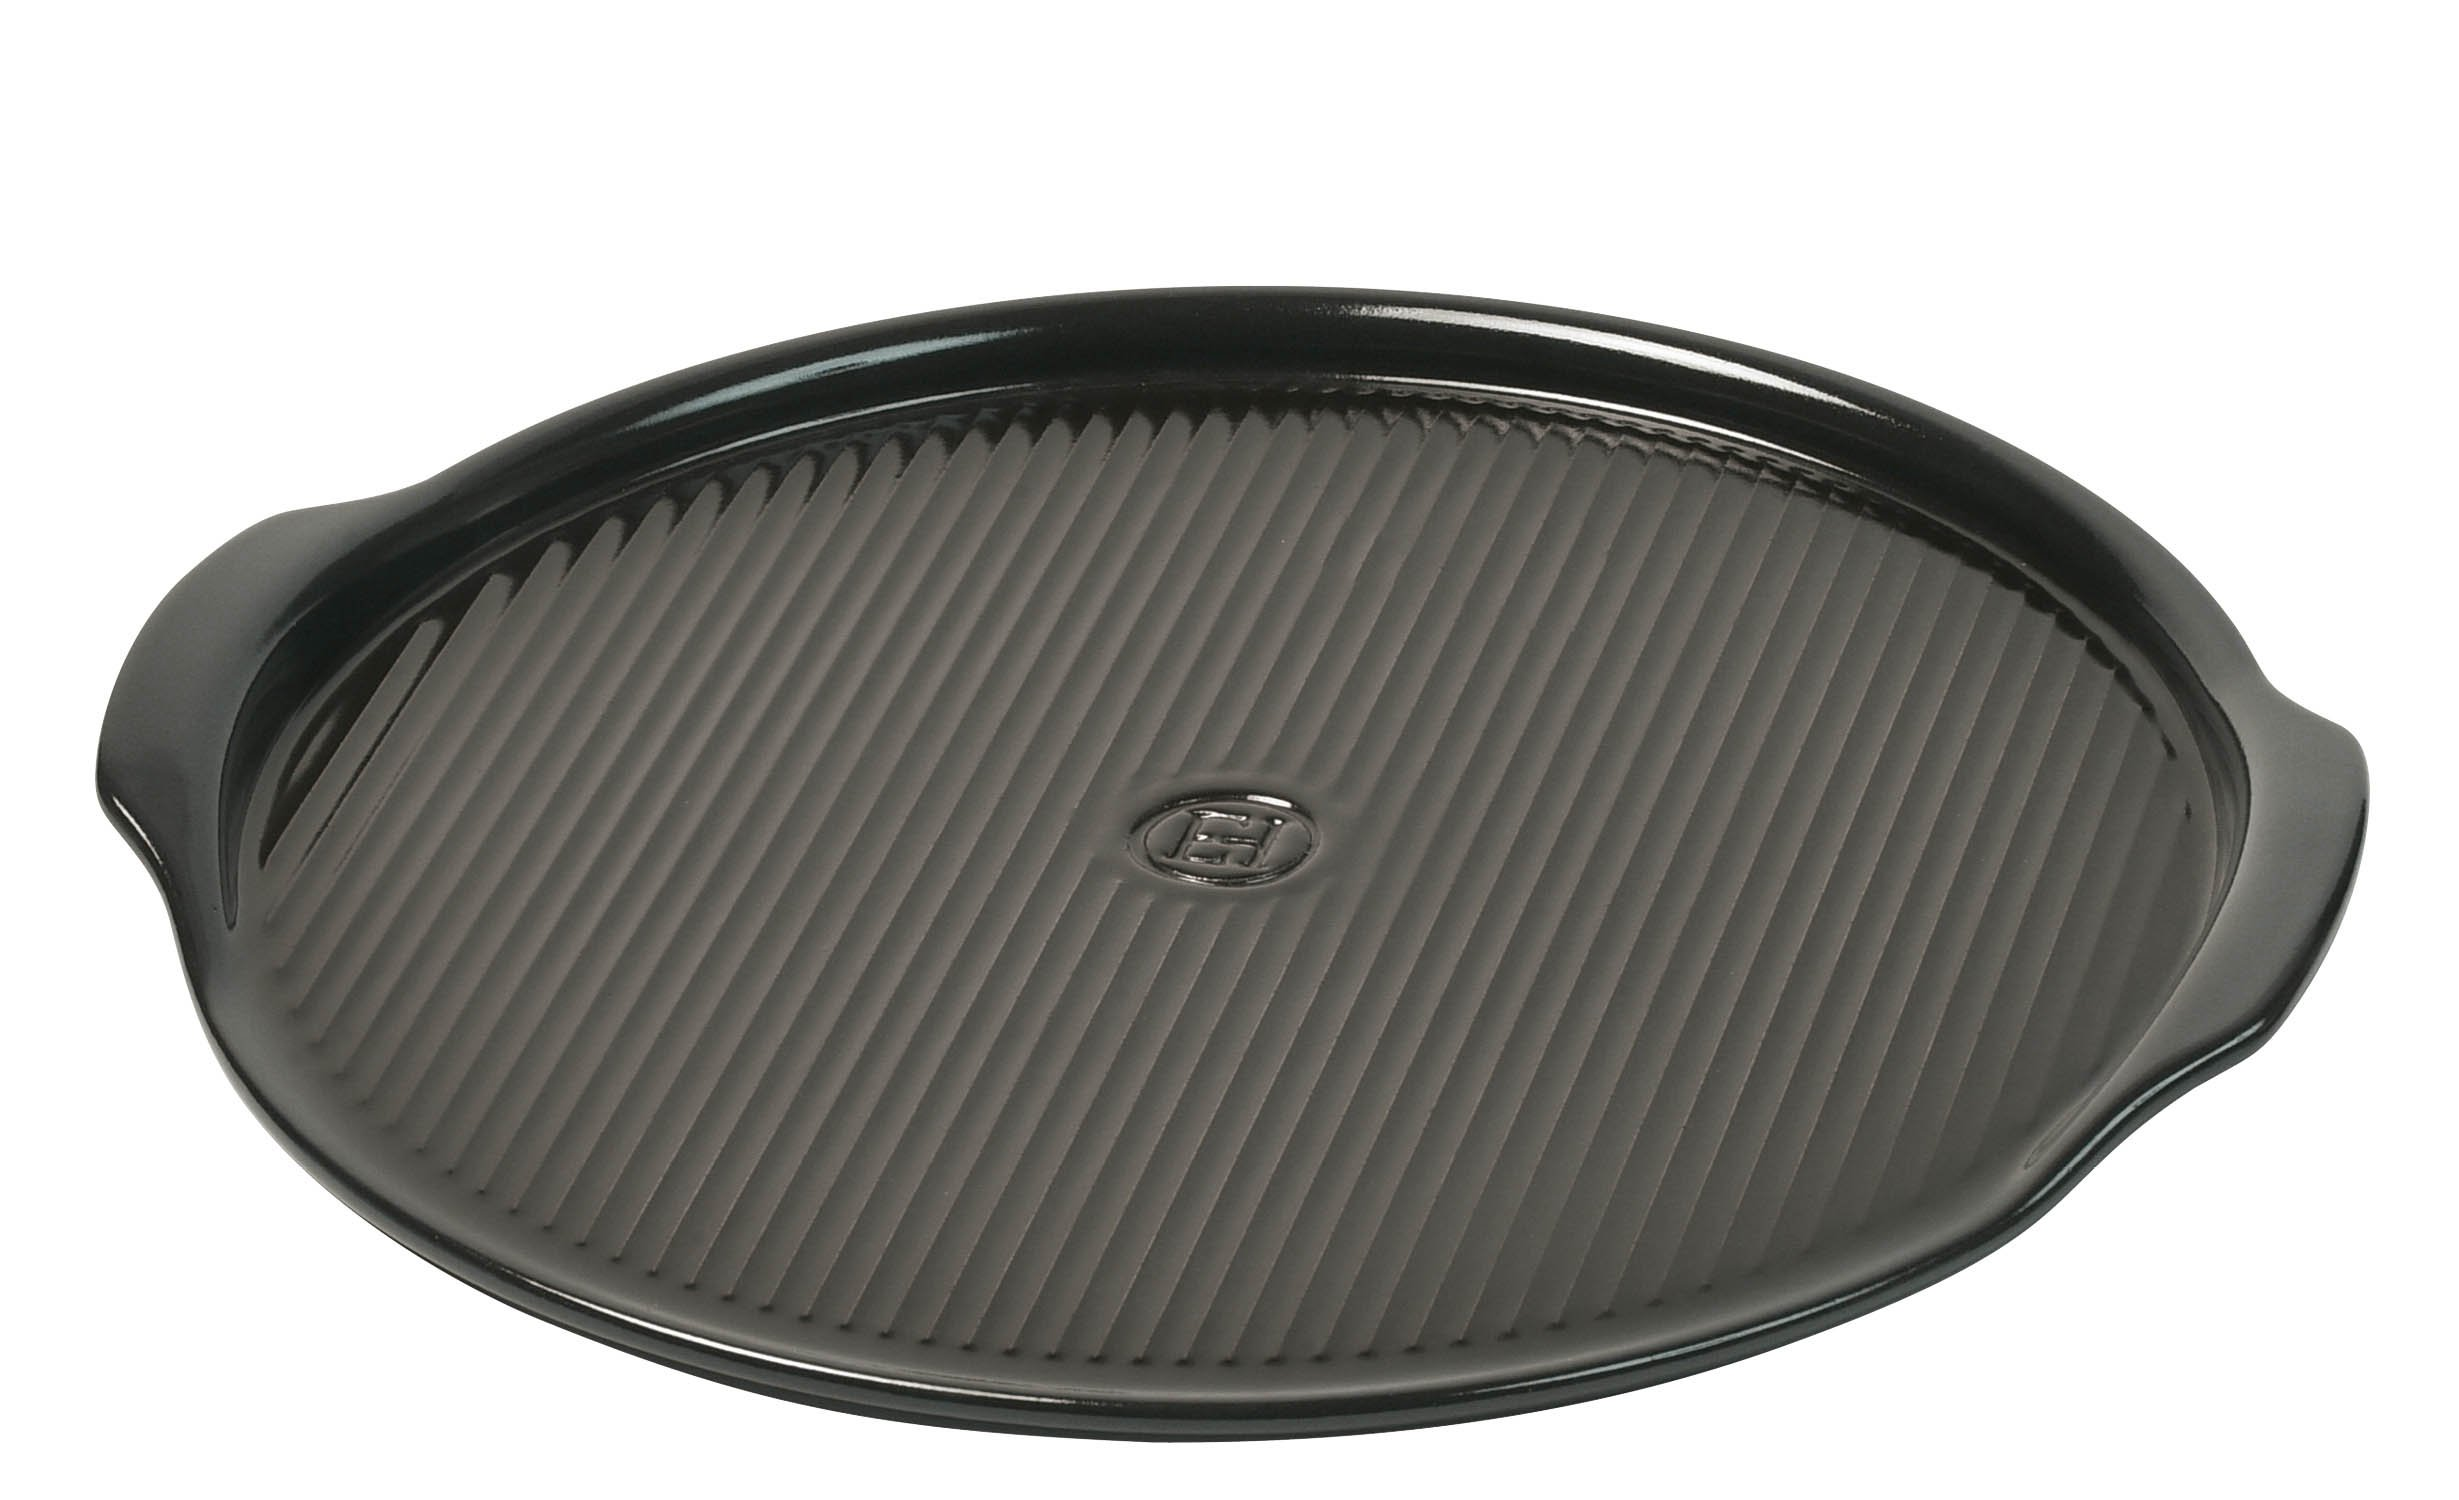 Emile Henry Made In France Flame Pizza Stone, 14.6 x 14.6'', Charcoal